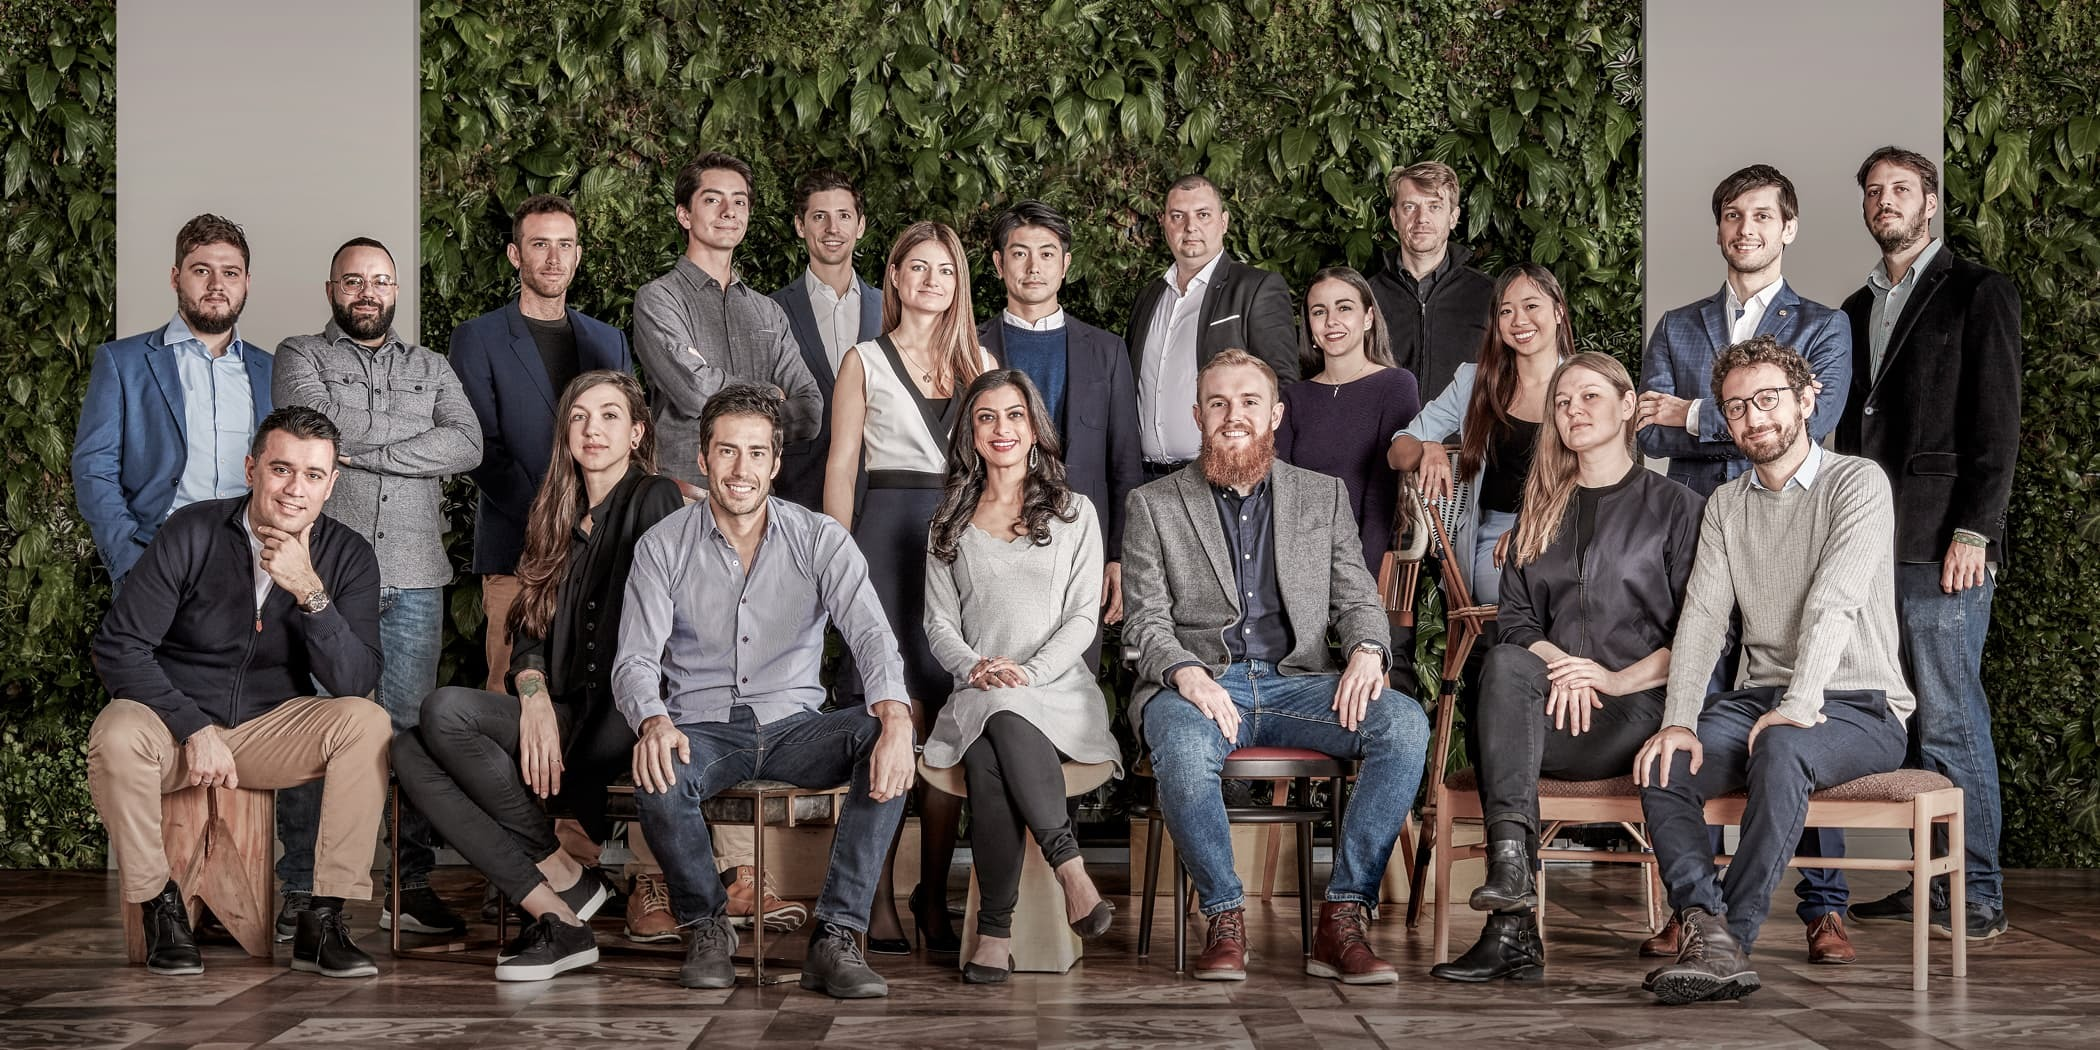 THE CHIVAS VENTURE IMPACT: OUR ALUMNI'S SUCCESS